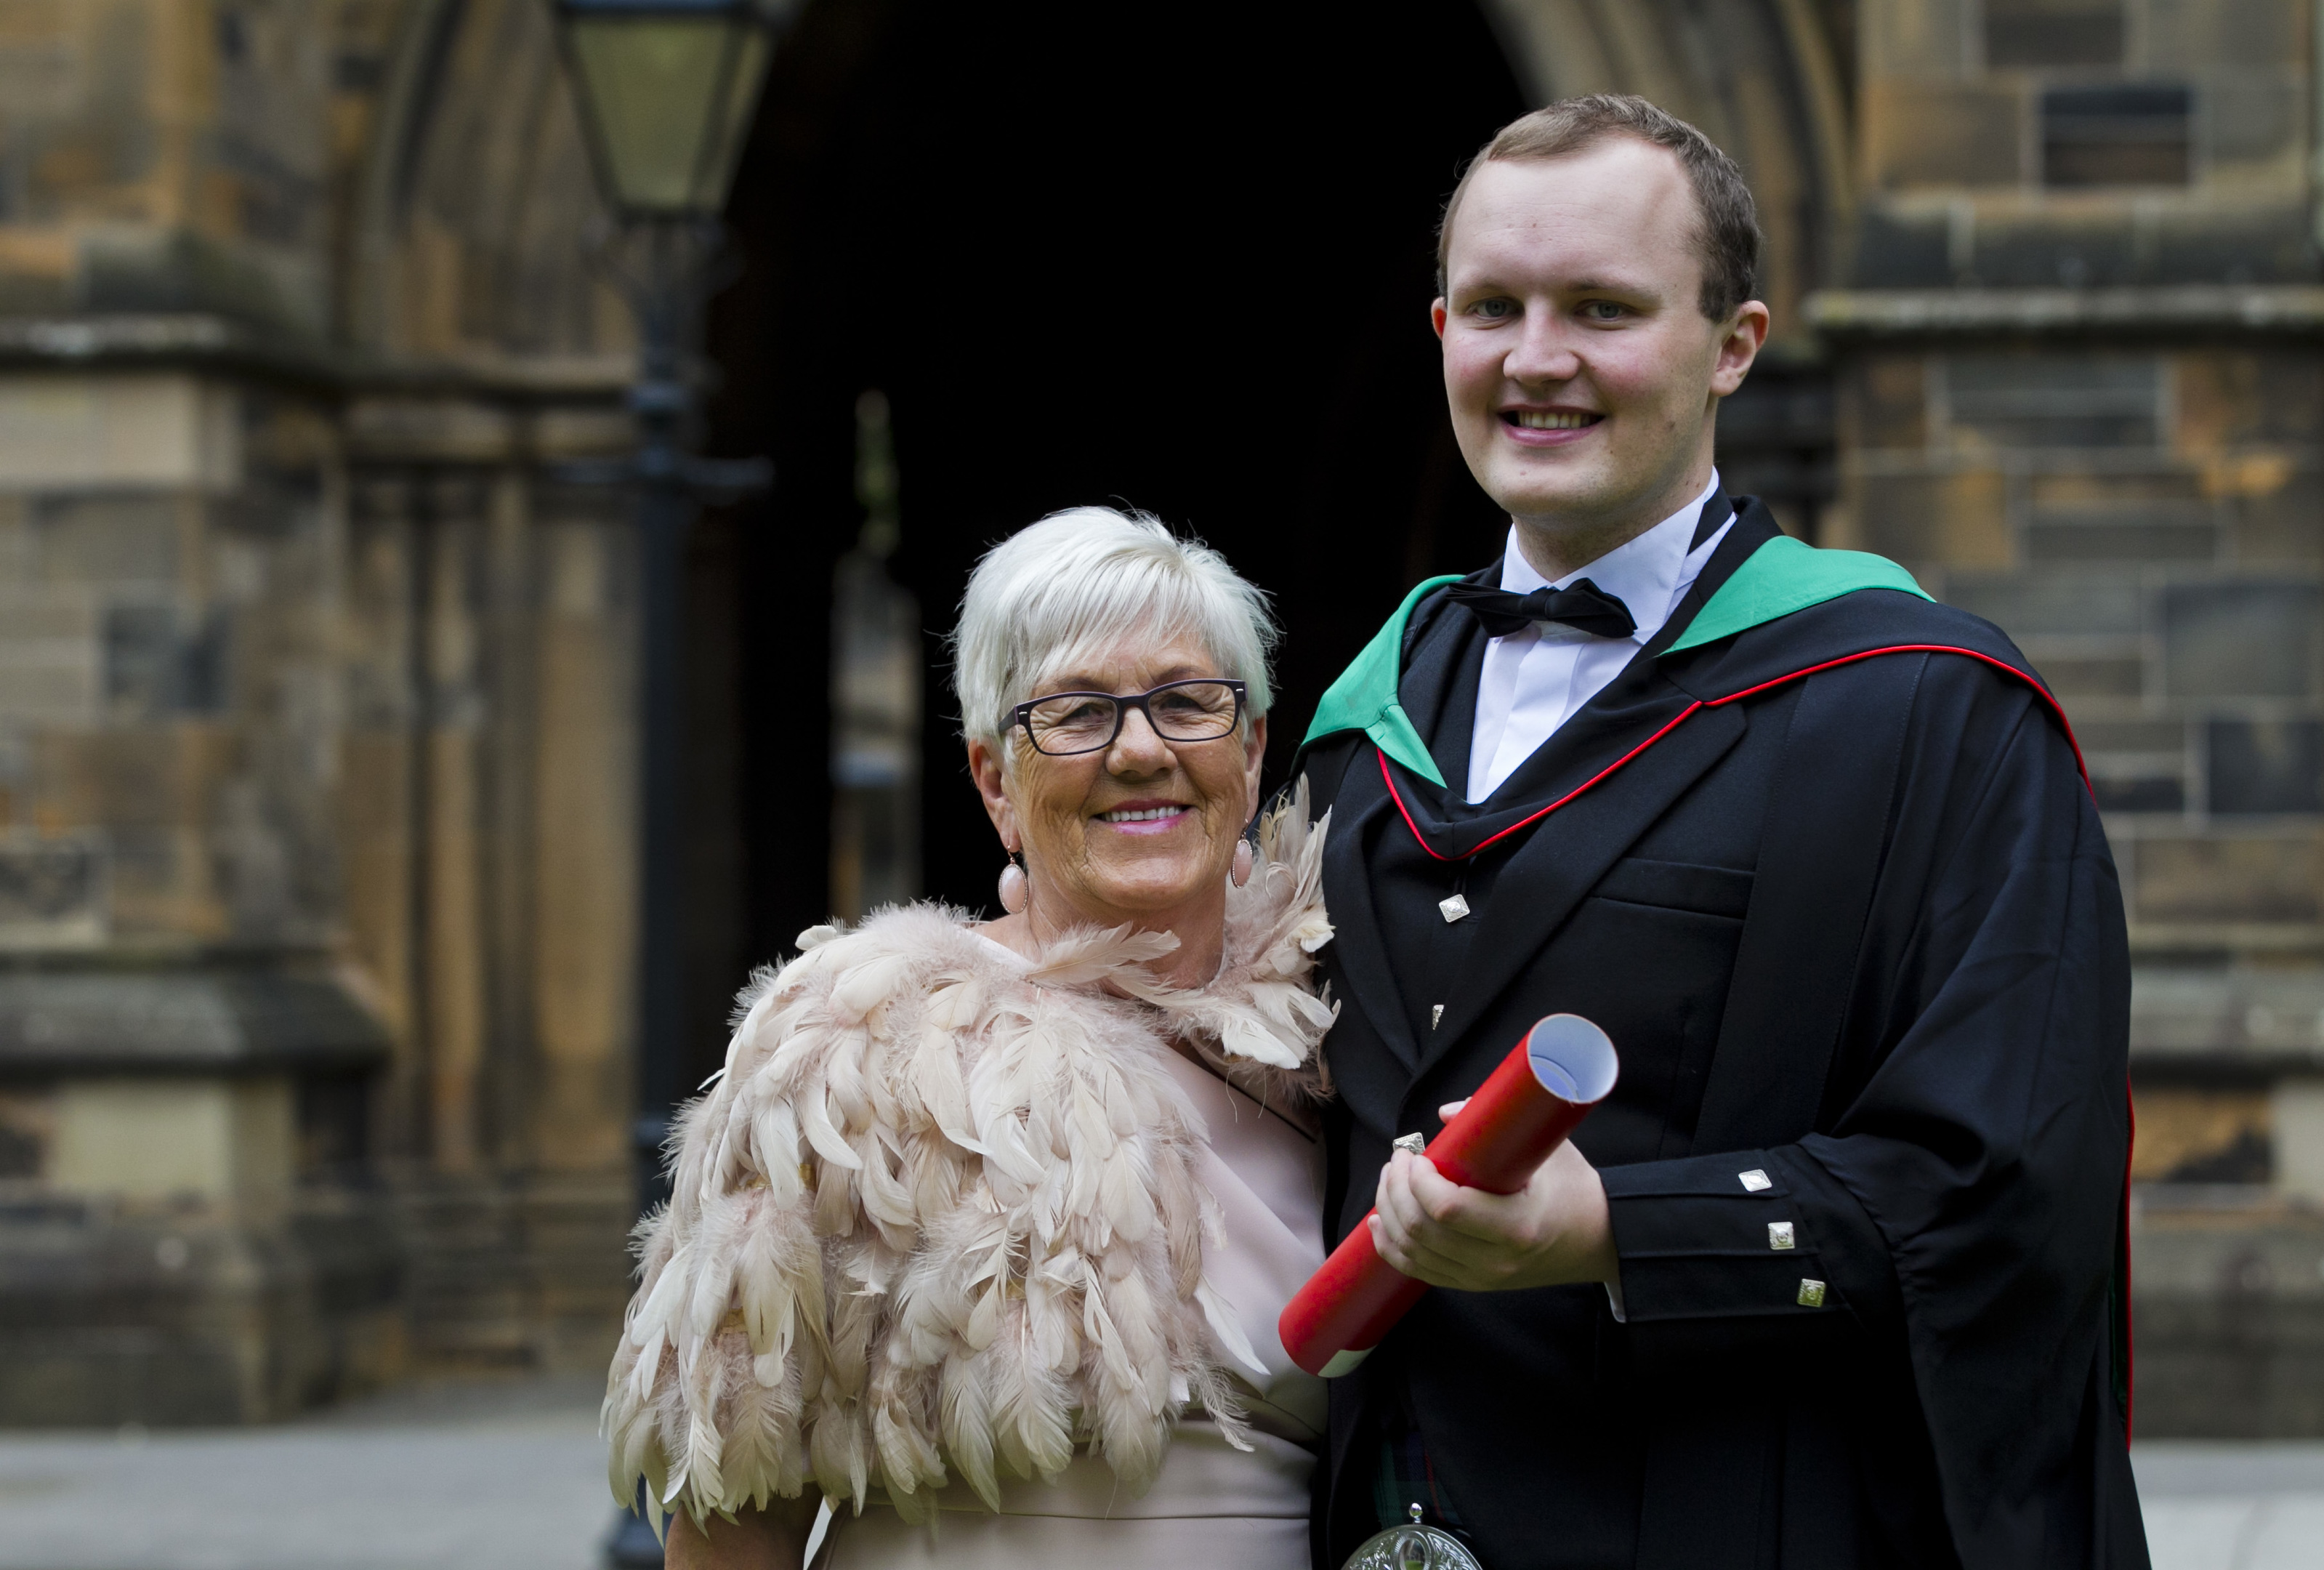 Jordan Bain graduated from Glasgow University (Andrew Cawley / DC Thomson)